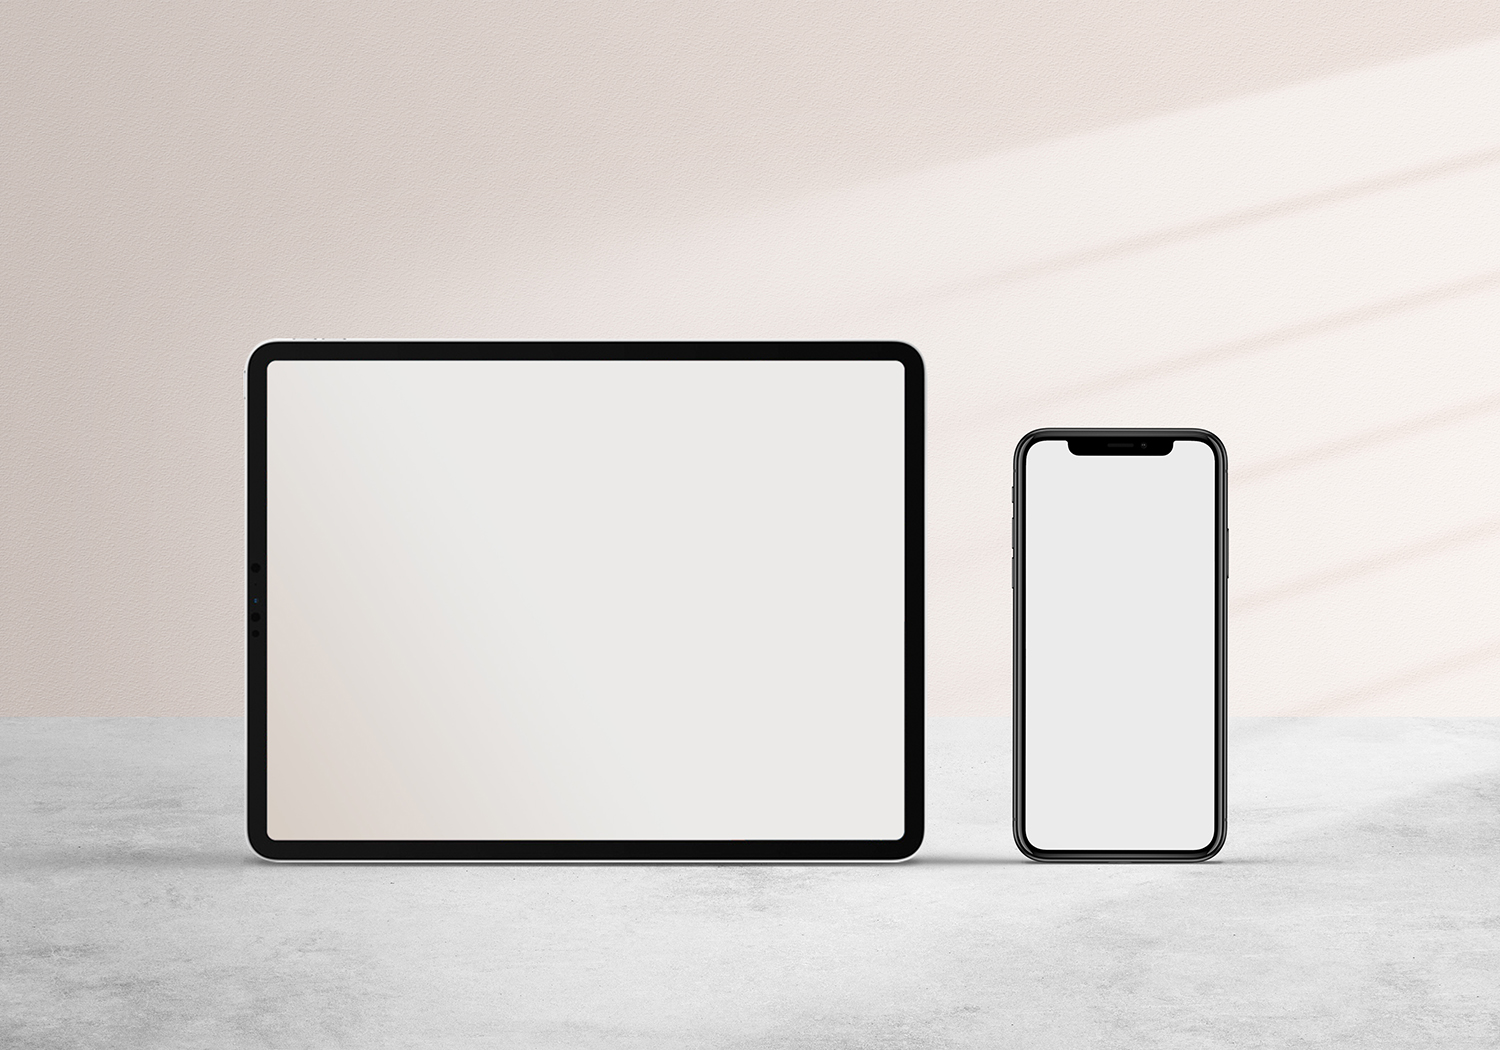 iPad and iPhone Mockup